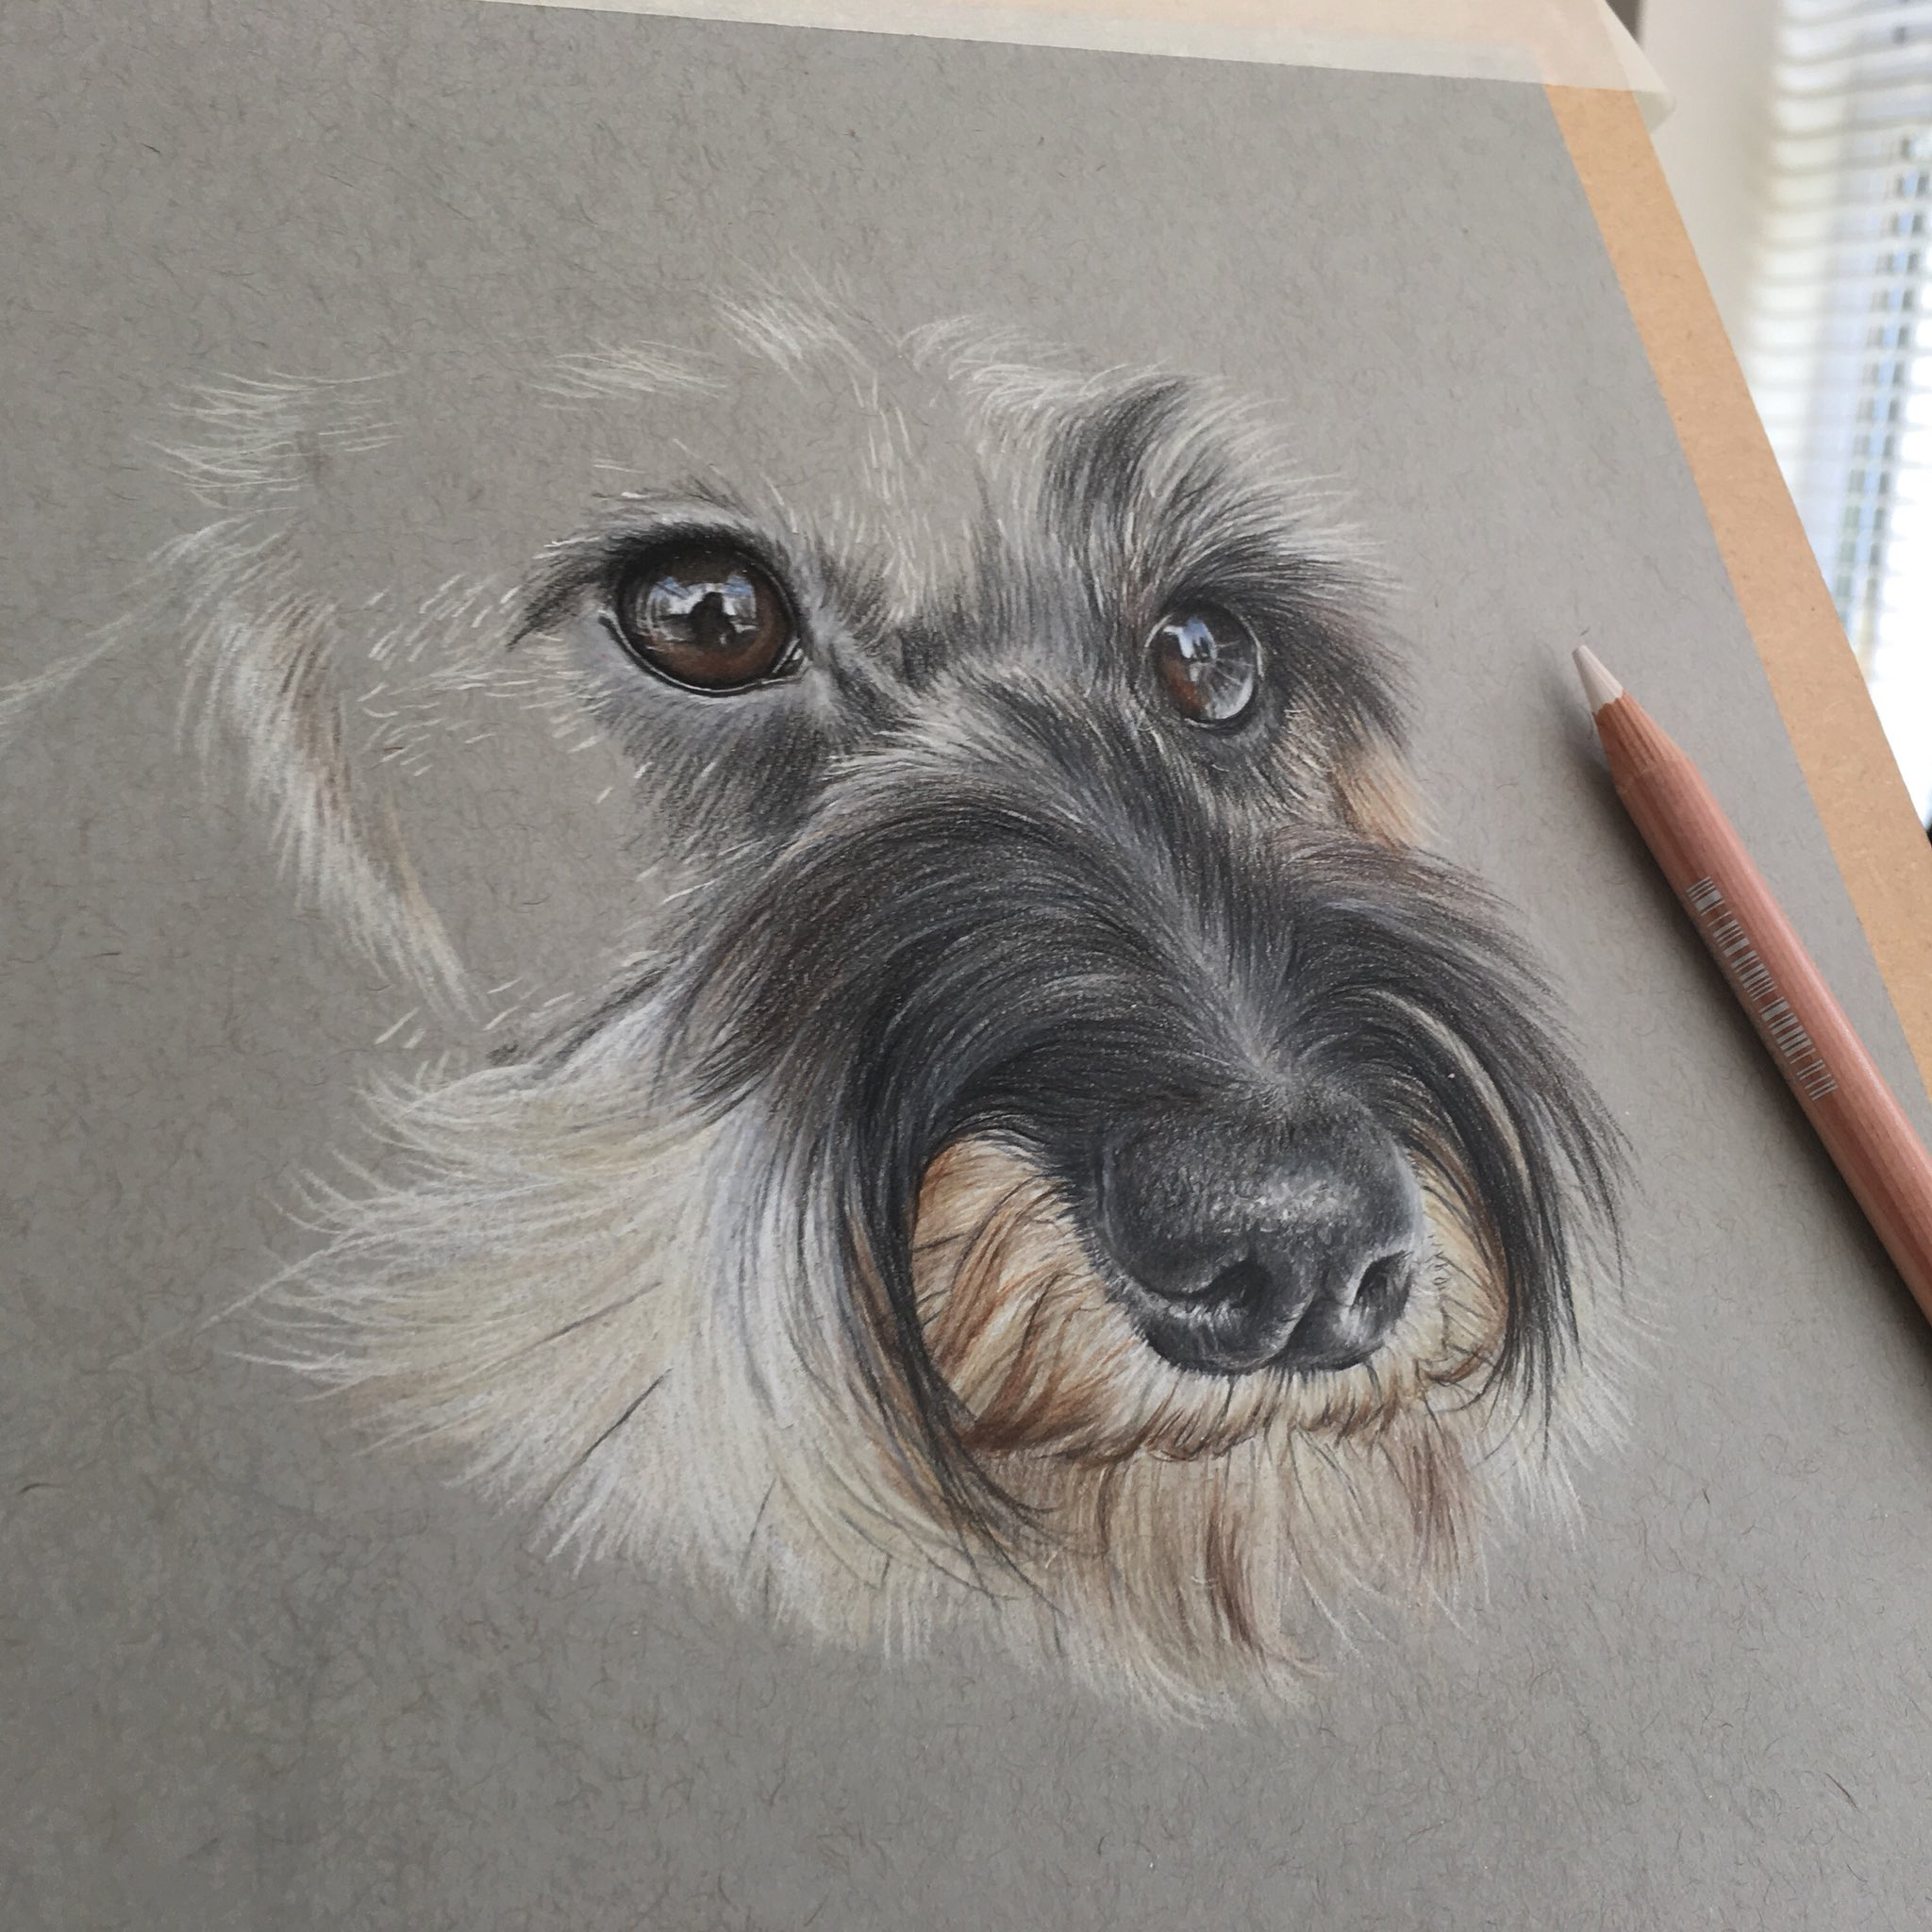 Completed Mini Wirehaired Dachshund Lottie, such a dear little face 🐾 #colouredpencil #petportraits #artistsontwitter @strathmoreart https://t.co/cdYyykILs2